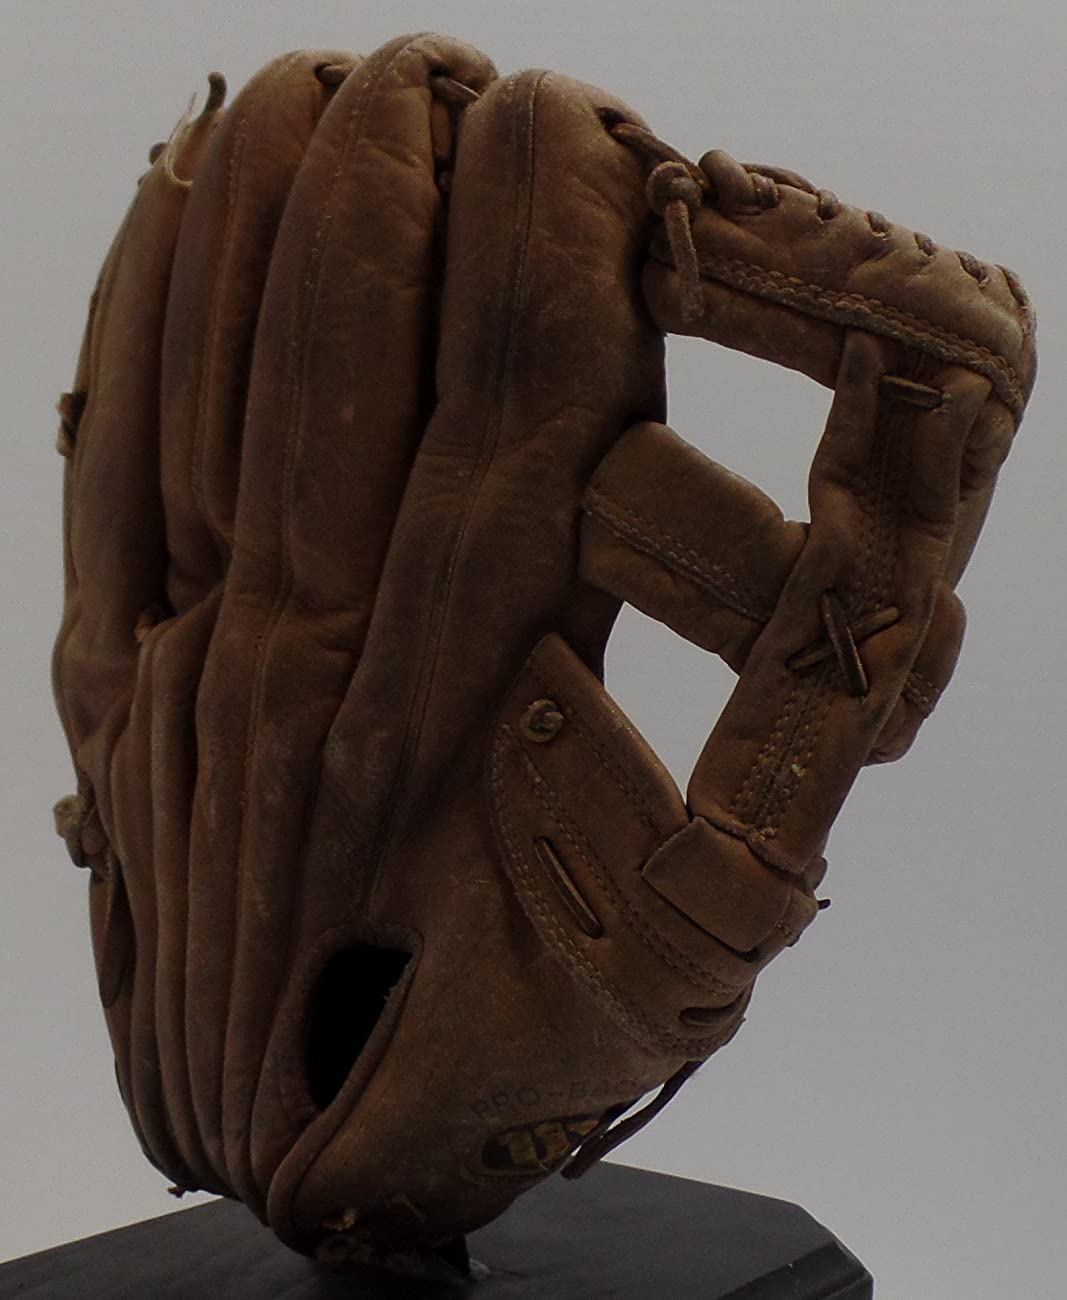 Vintage Bobby Bonds Pro Style Baseball Glove - Wilson Right Hand Thrower (Great for Display - Could Be Used Everyday) Free Shipping & Tracking 4